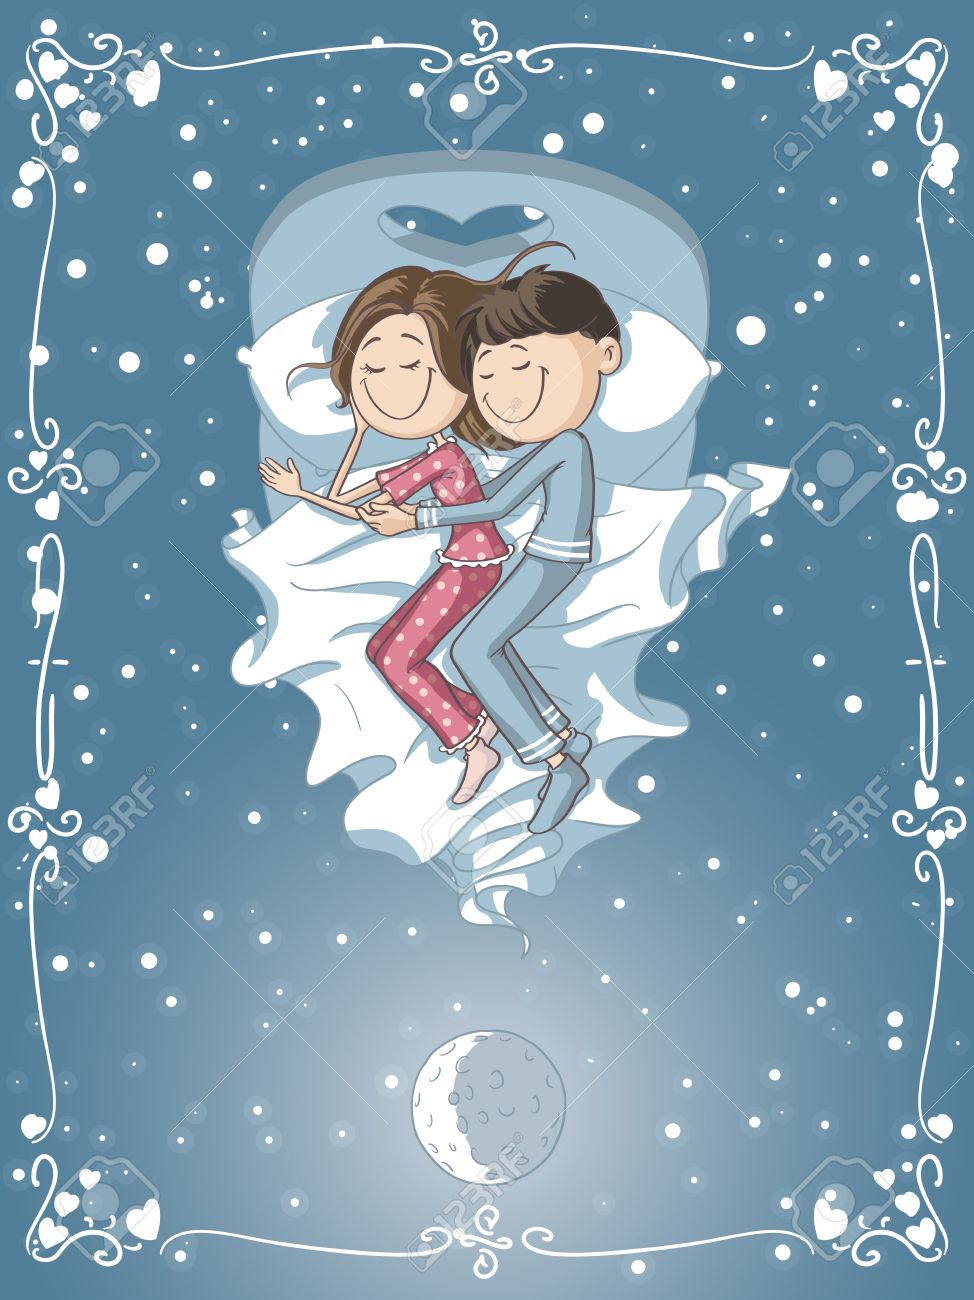 Romantic Sleeping Images Cartoon